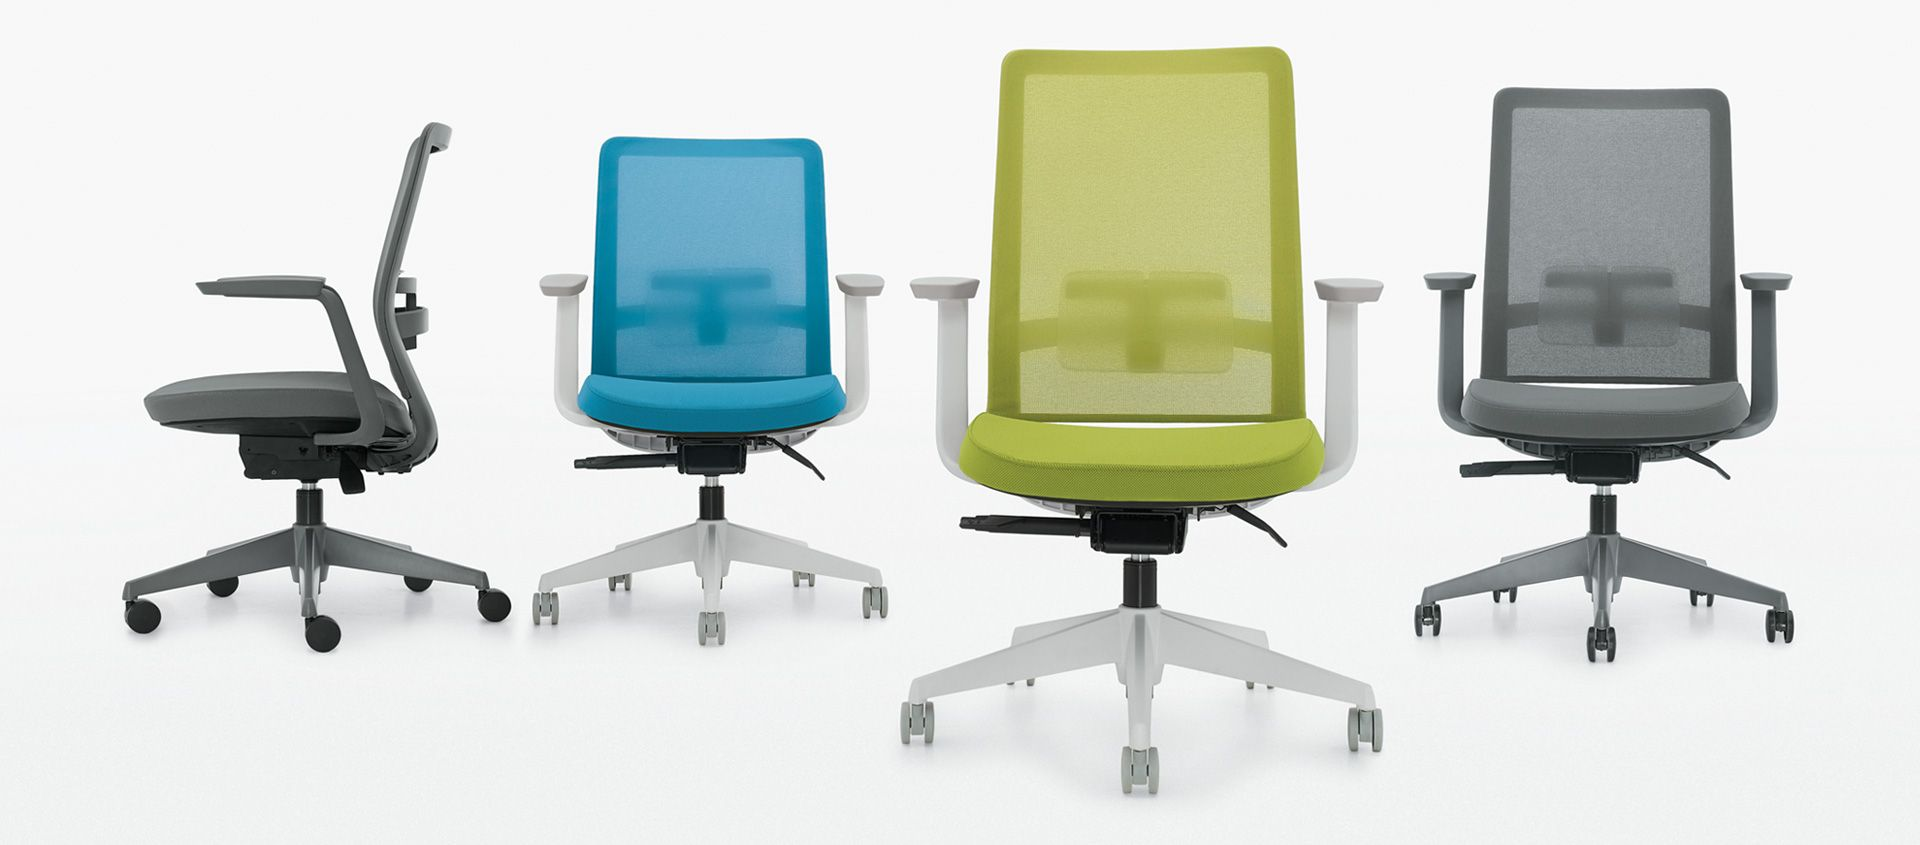 Do You Need Task Office Seating For Your Maryland Washington Dc